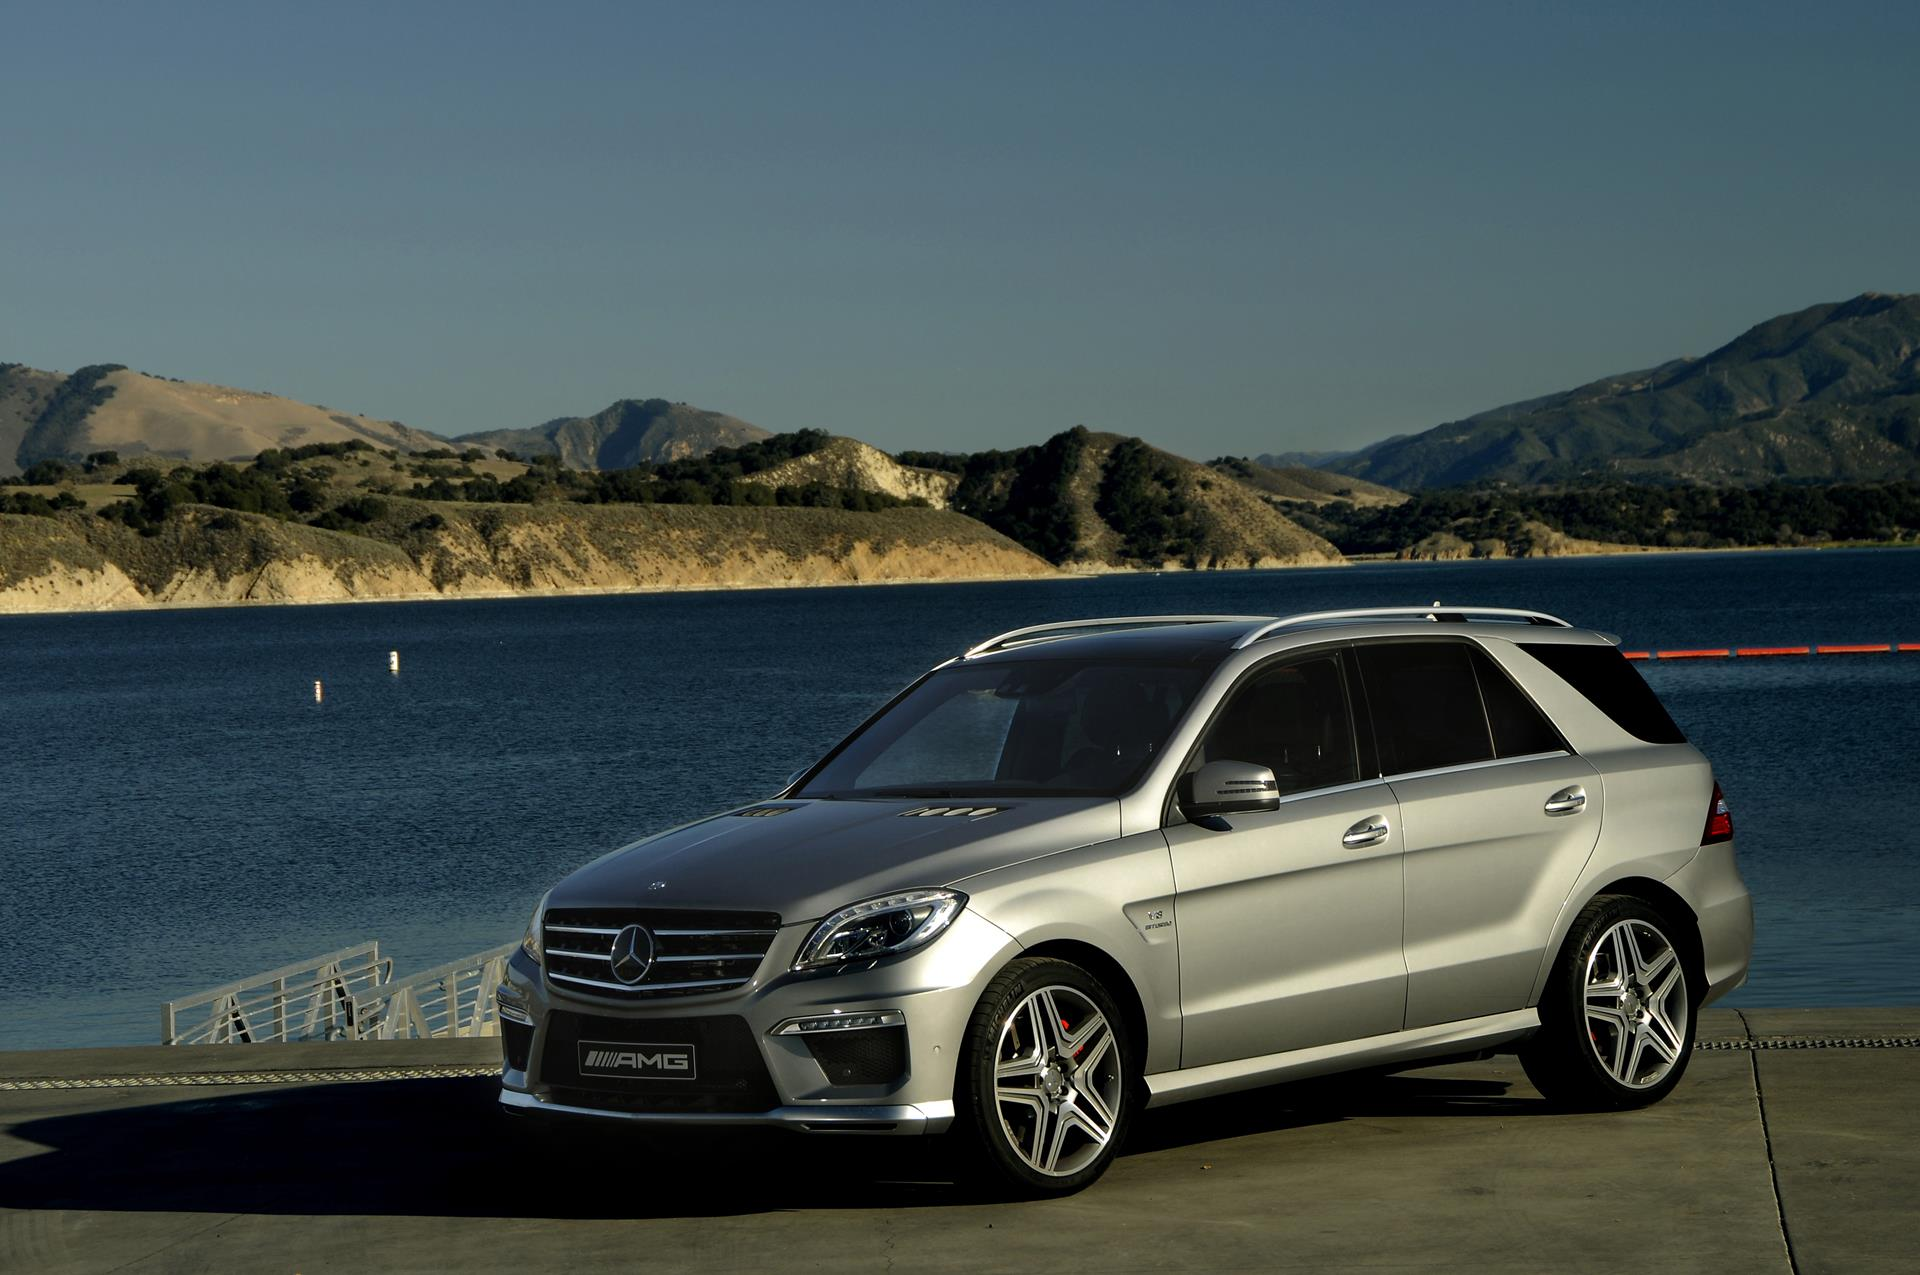 2015 mercedes benz m class news and information. Black Bedroom Furniture Sets. Home Design Ideas